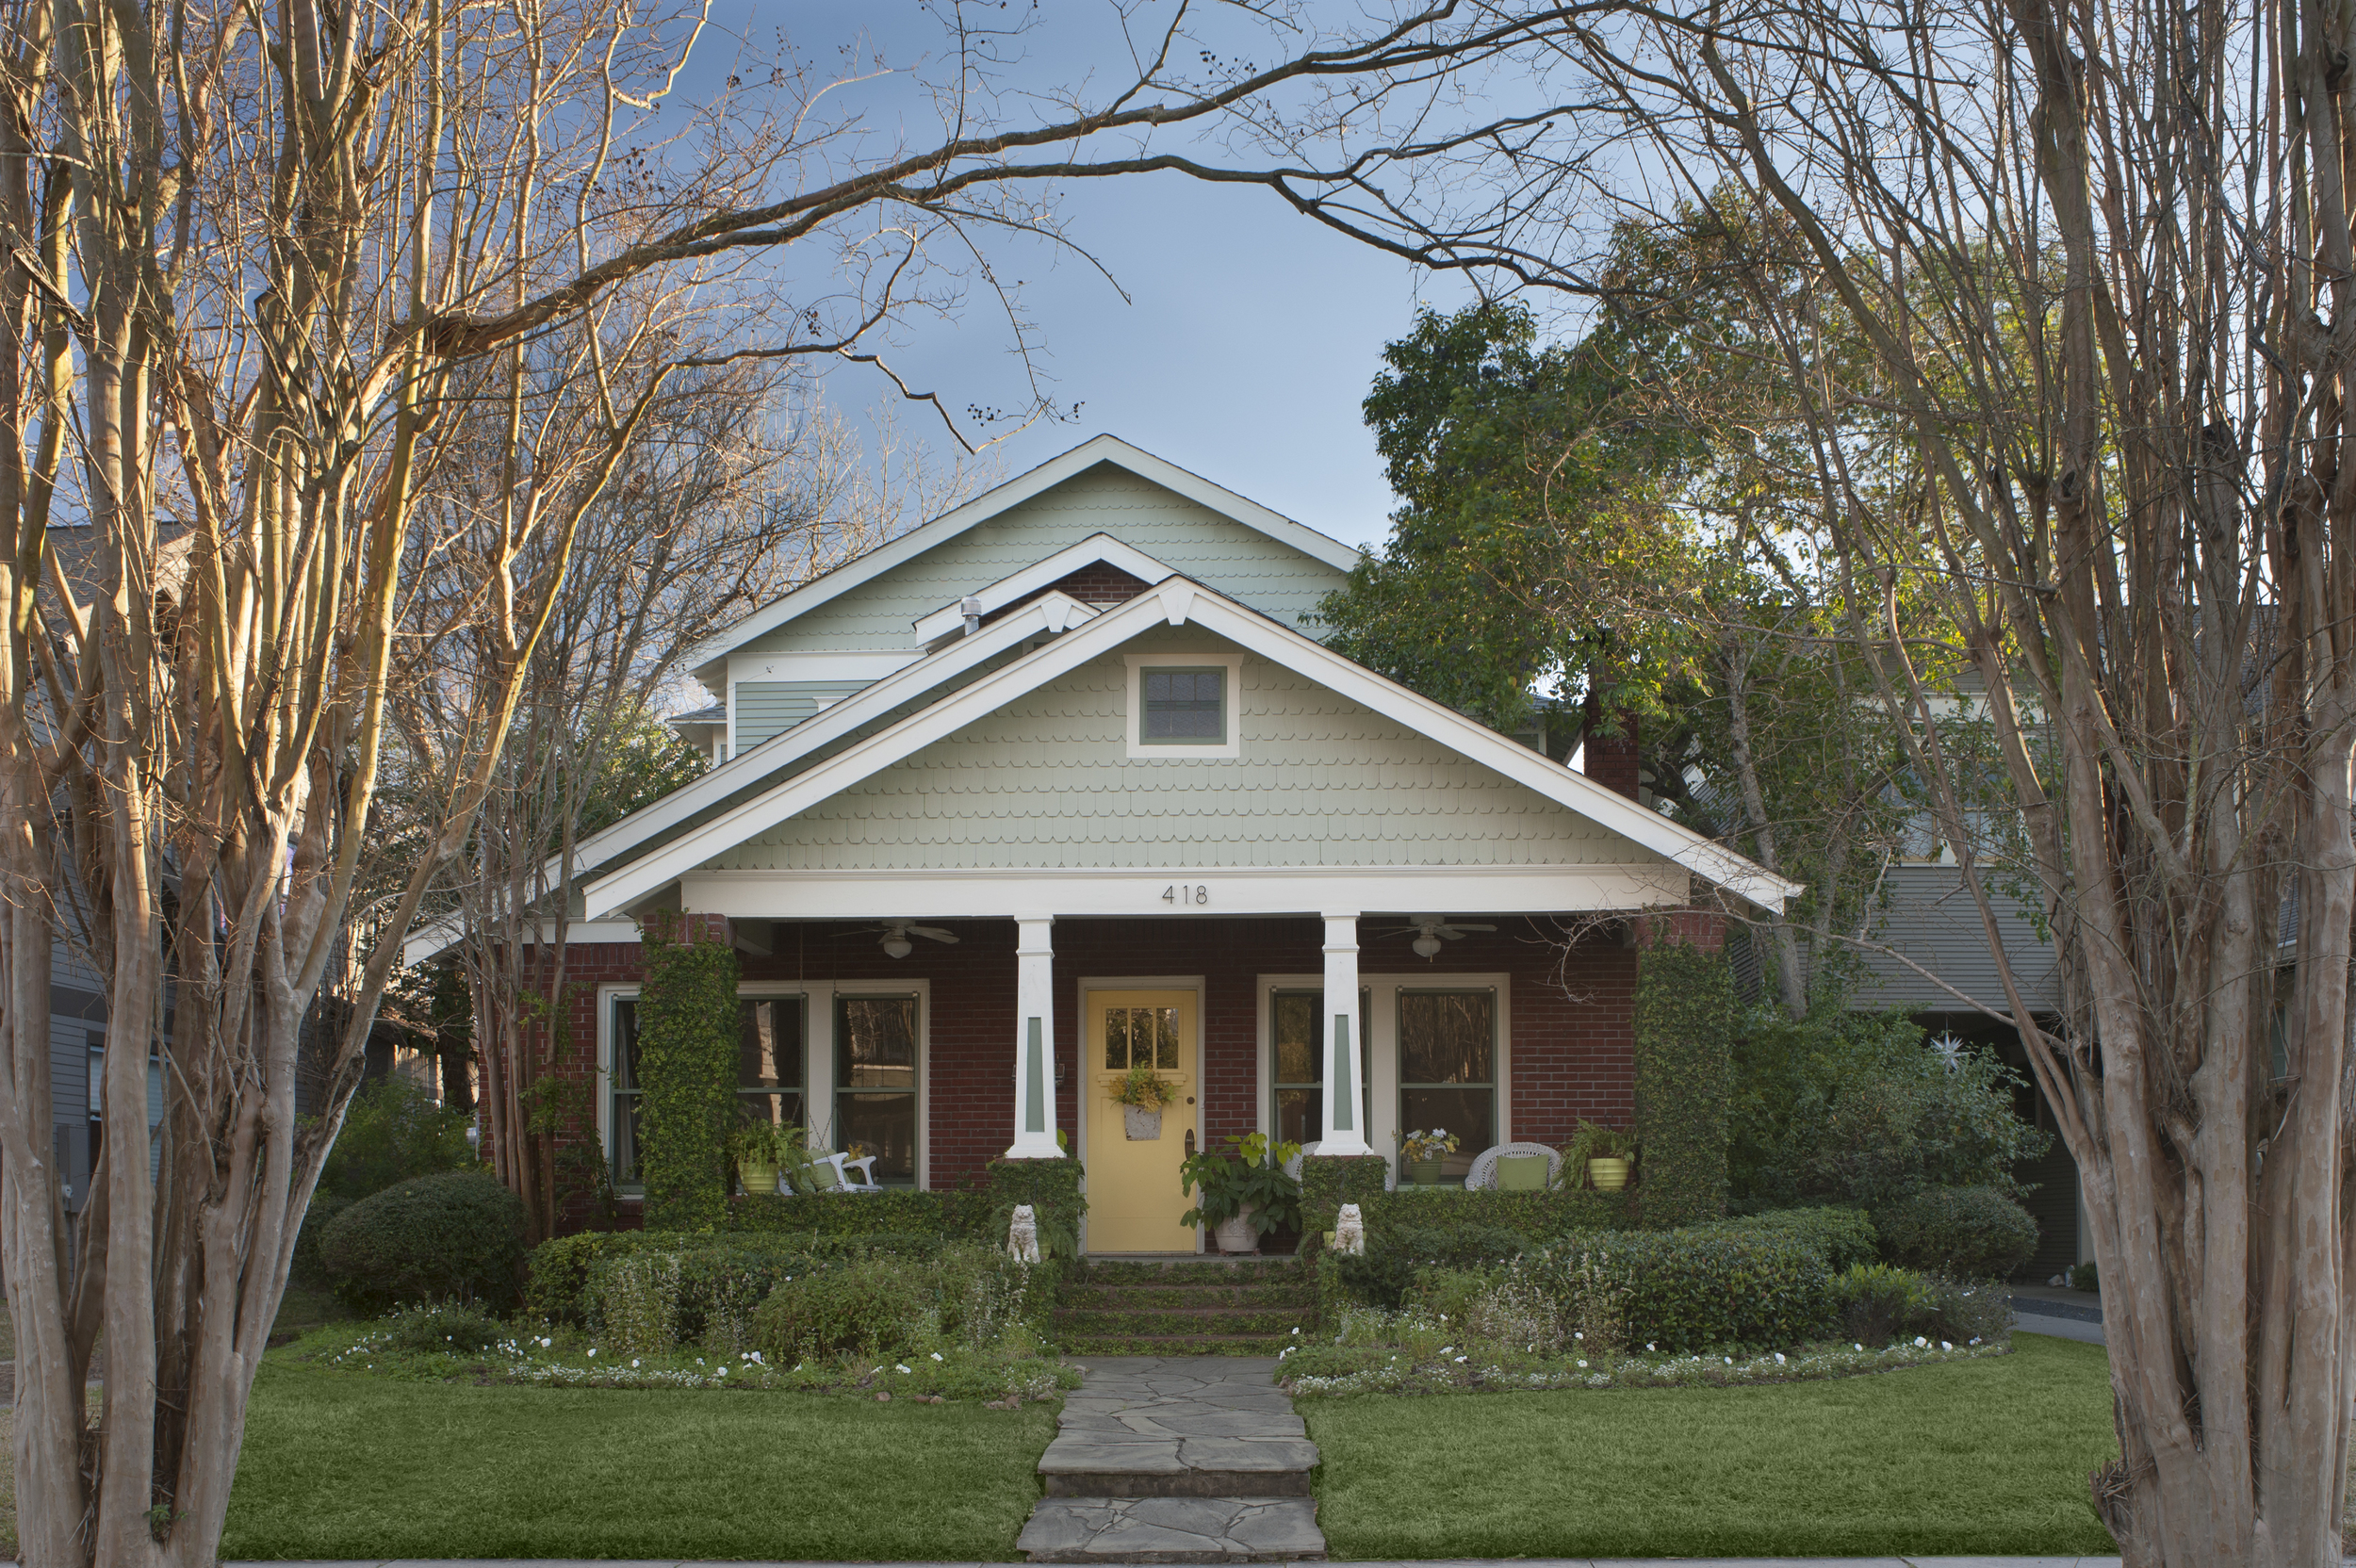 418 Byrne: Circa 1915 Craftsman brick bungalow expanded through the years, with complete update in 1996 and second story addition in 2014.